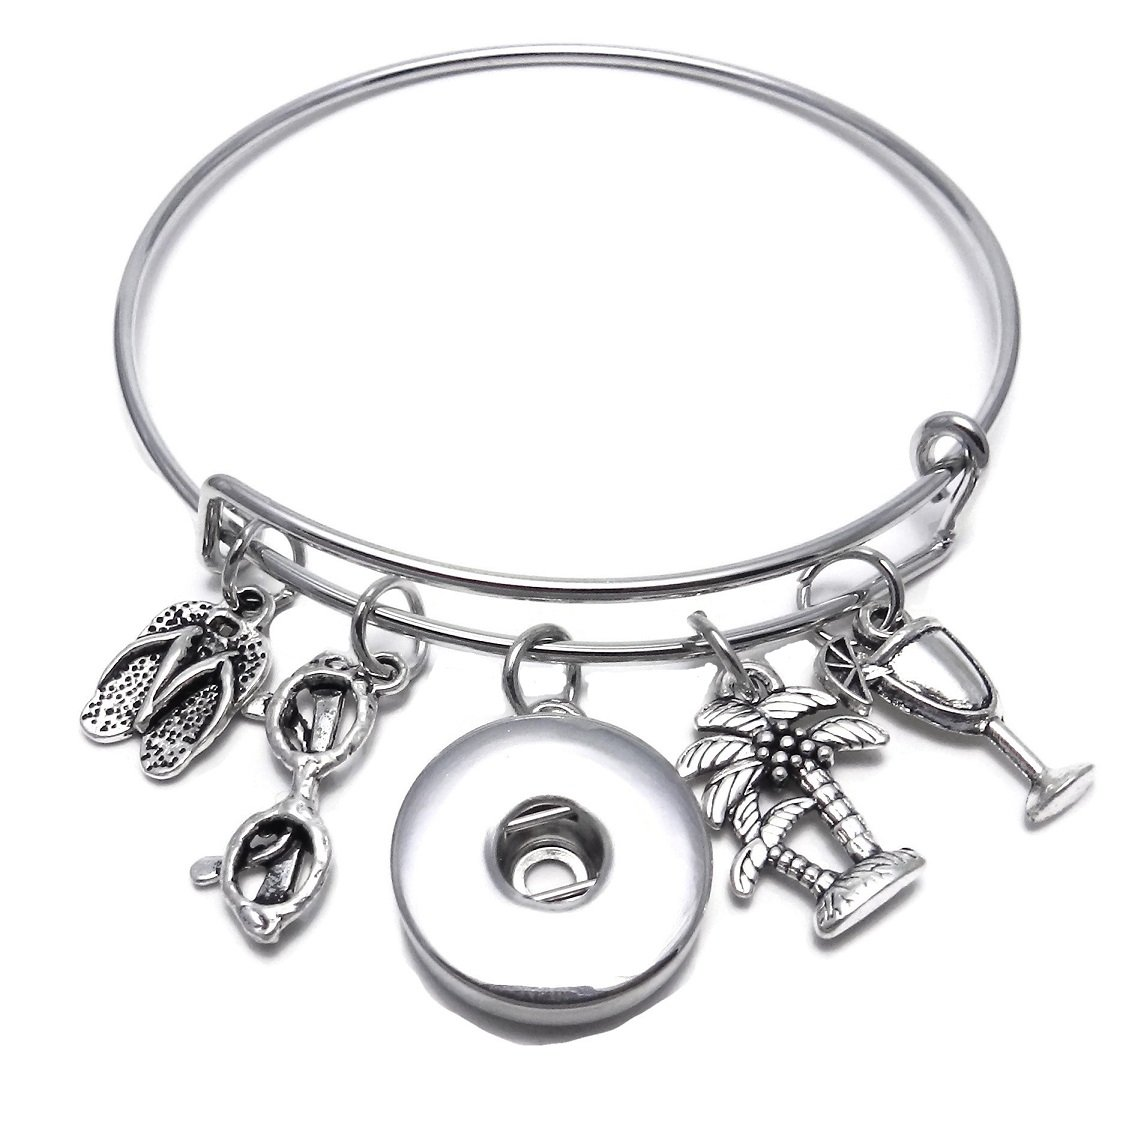 My Prime Gifts Expandable Beach Flip Flop, Palm Tree, Sunglasses & Drink Wire Bangle Charm Bracelet holds 18-20mm Snap